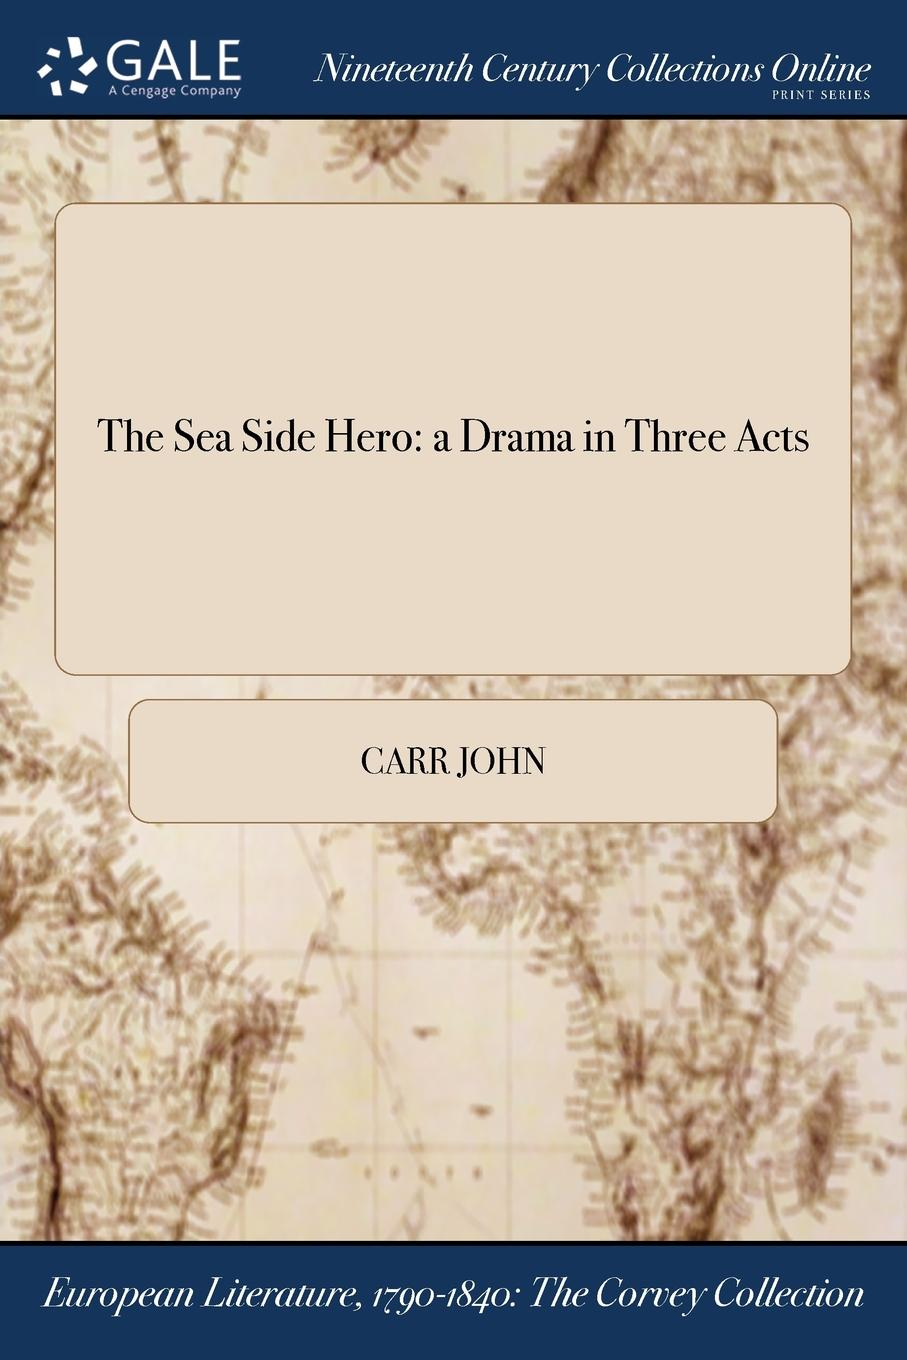 Carr John The Sea Side Hero. a Drama in Three Acts